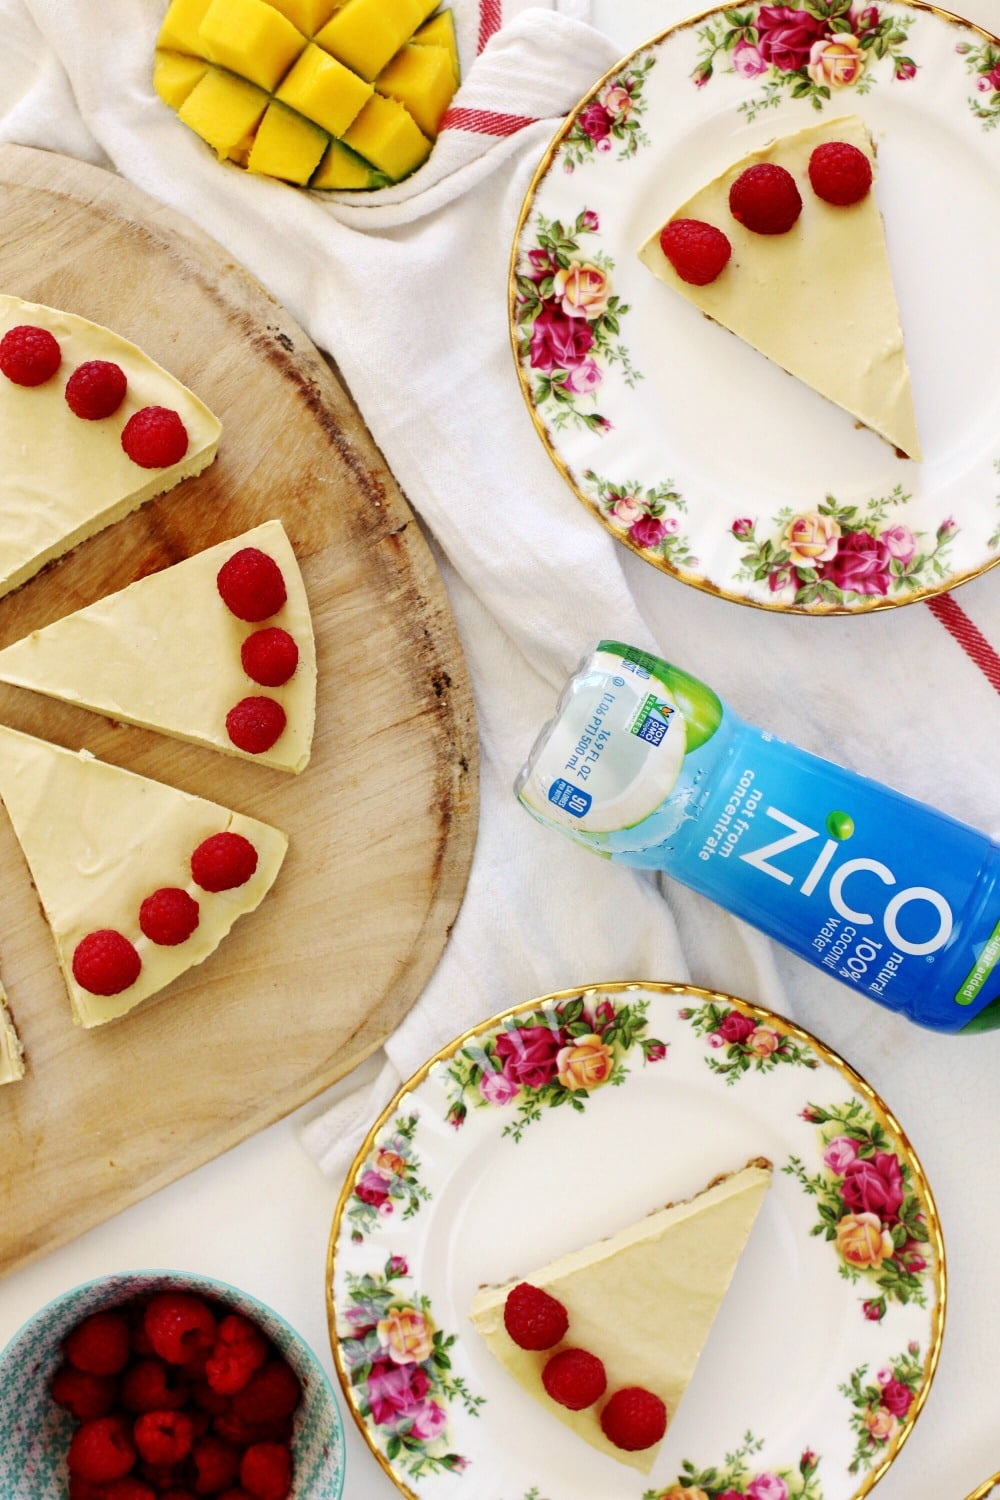 You are going to love this no-bake raw vegan mango raspberry cheesecake recipe that was created in collaboration with @ZICOcoconut. #InsideIsEverything and the ingredients in this cheesecake will leave you guiltless: fresh fruit, nuts, coconut oil, ZICO Natural and dates #madewithZICO #ad